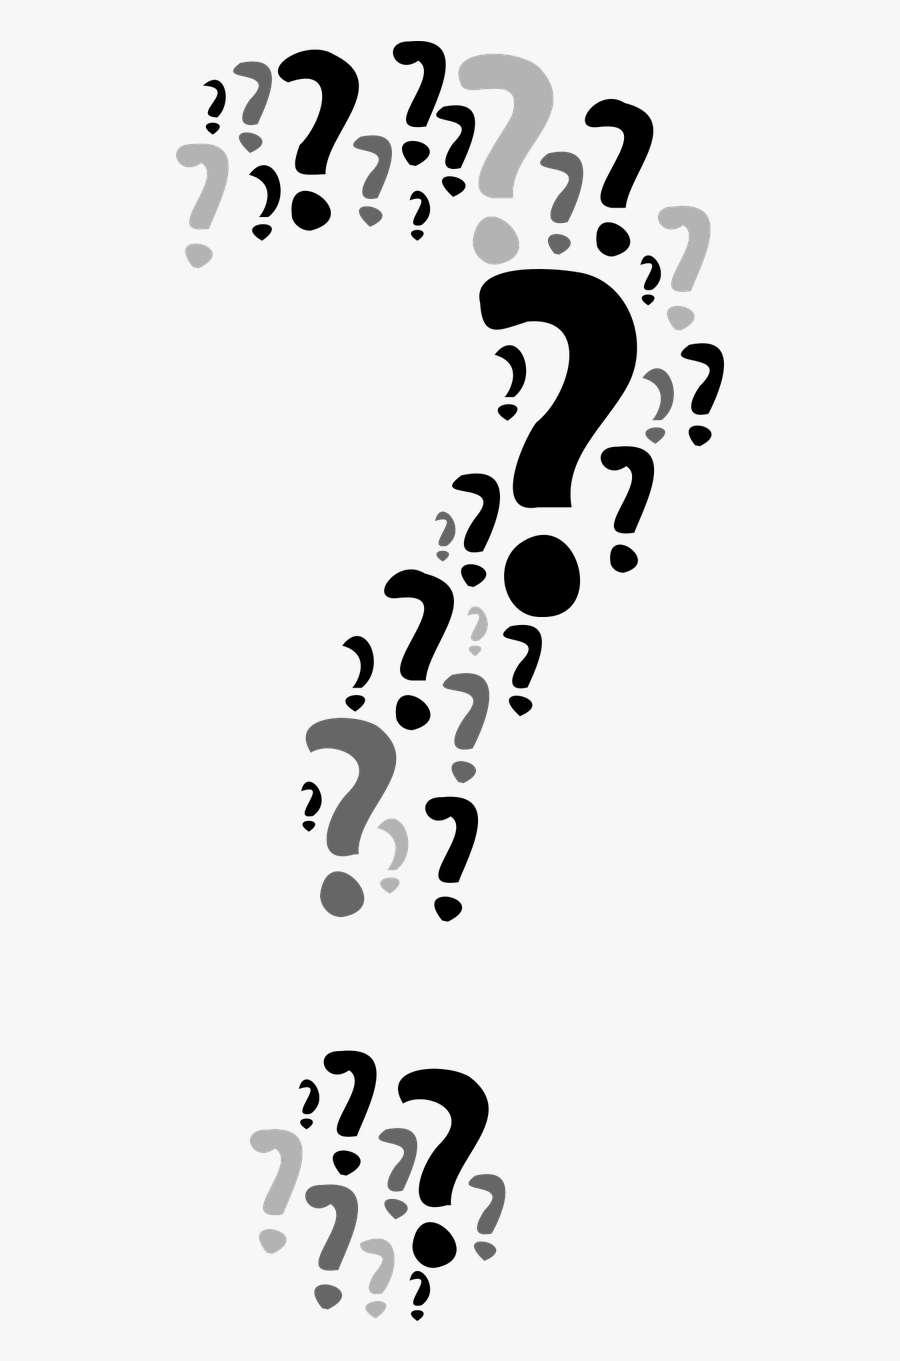 Question Questions The Question Mark Free Picture - Only For Genius Puzzles With Answers, Transparent Clipart